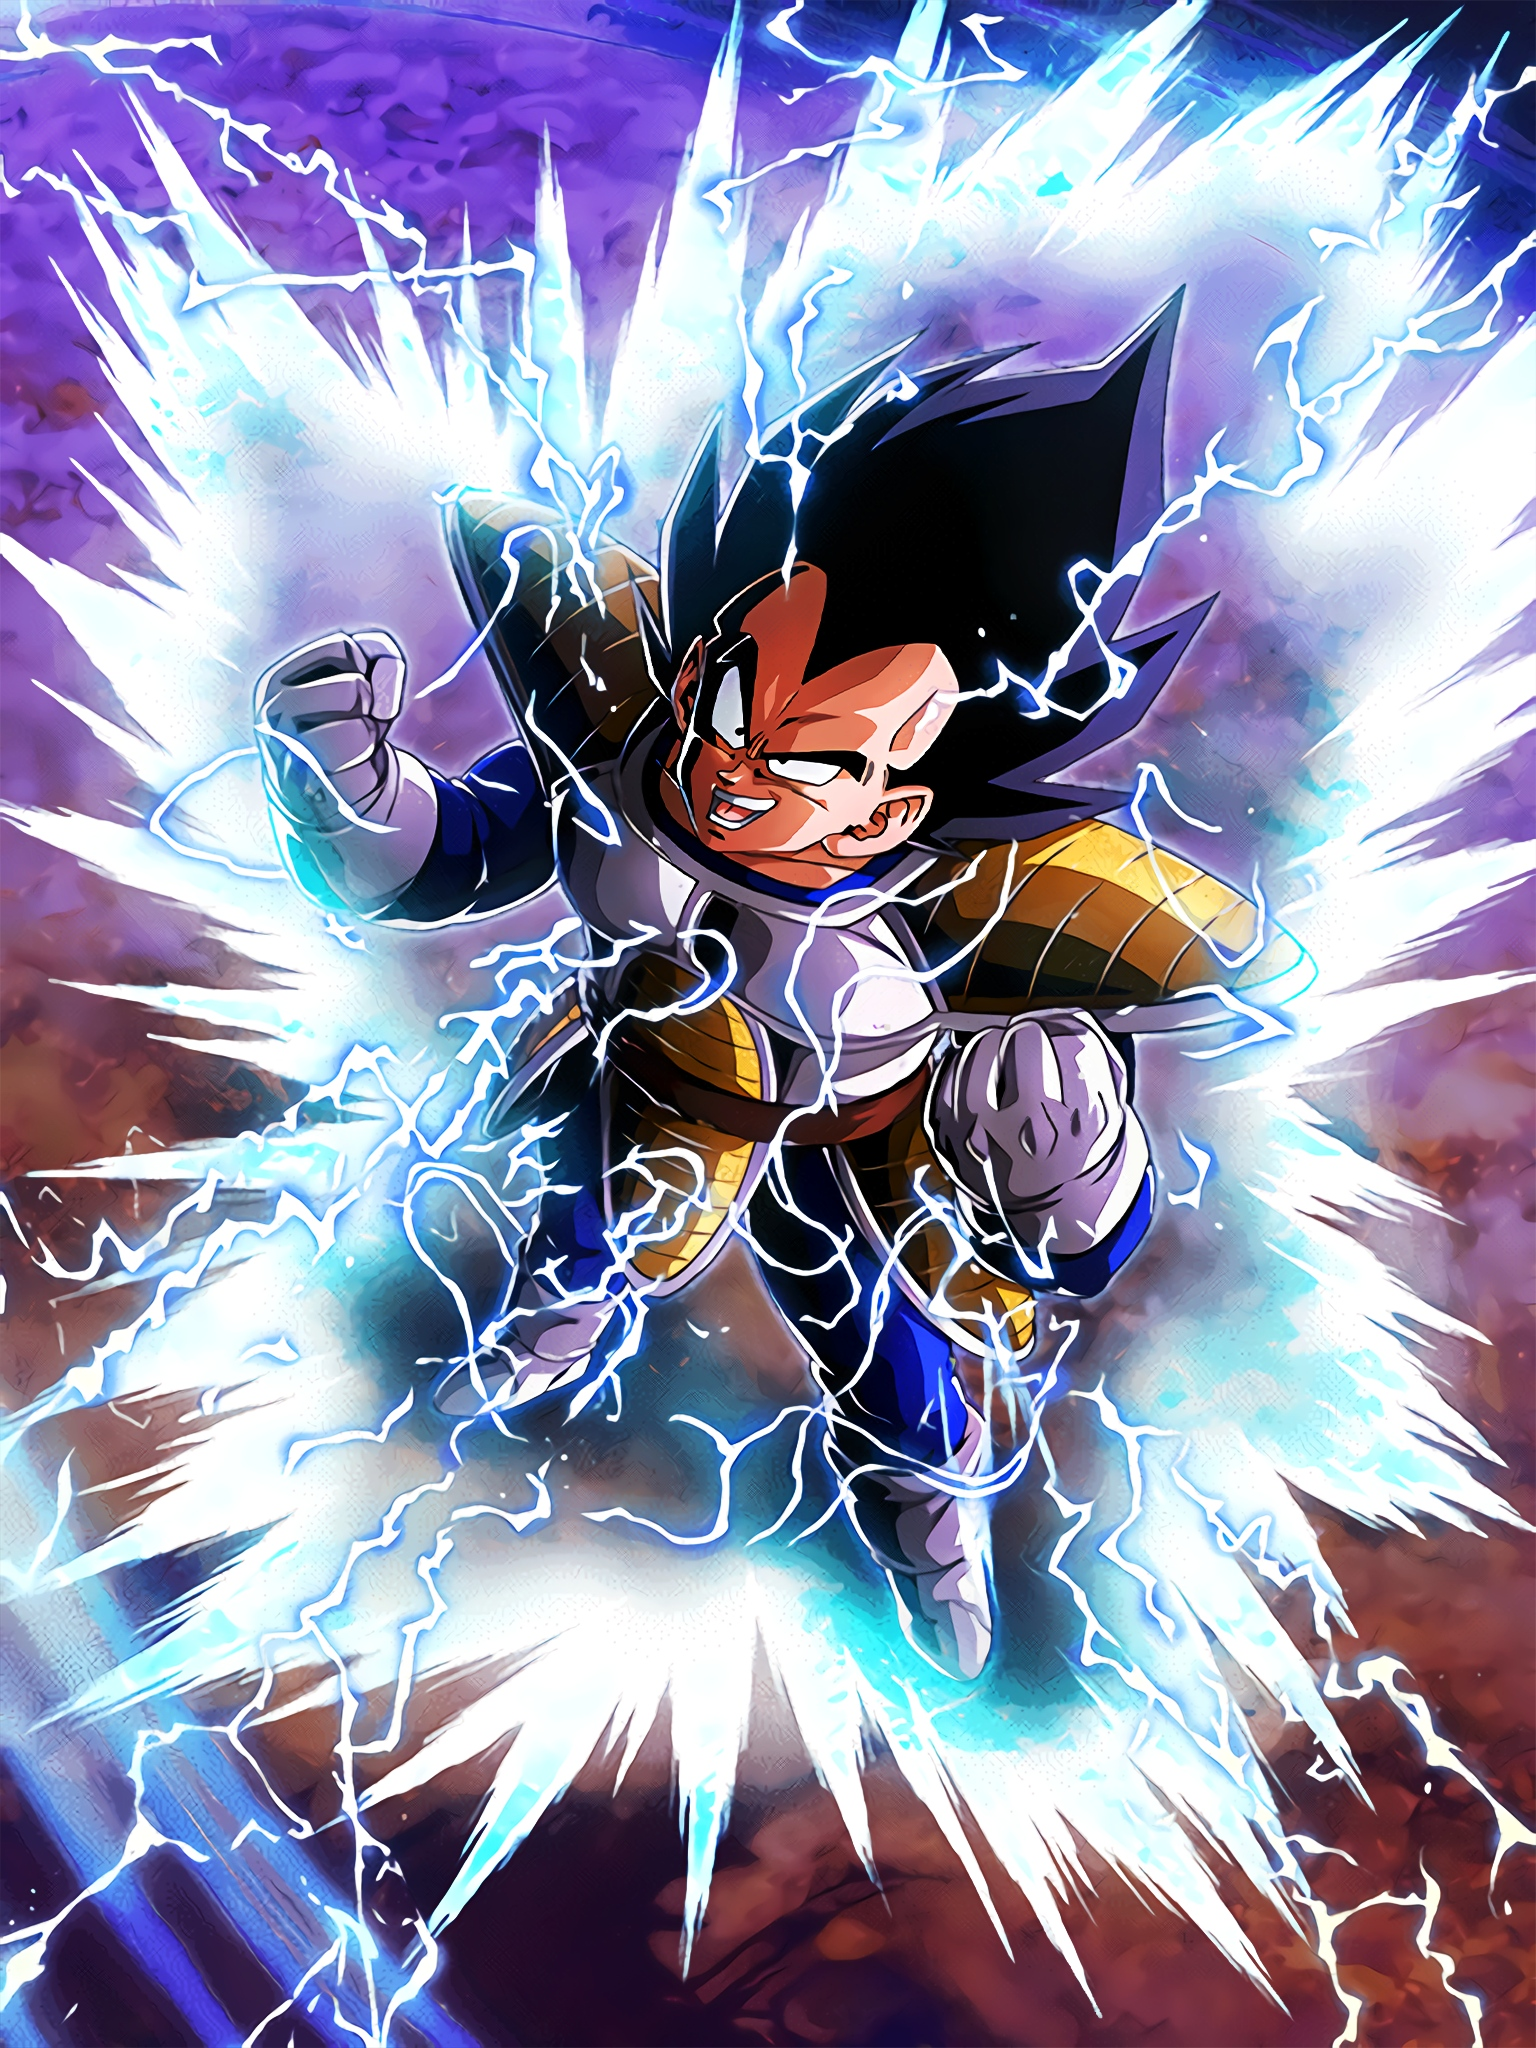 Brutal Saiyan of Fury Vegeta Art (Dragon Ball Z Dokkan Battle).jpg